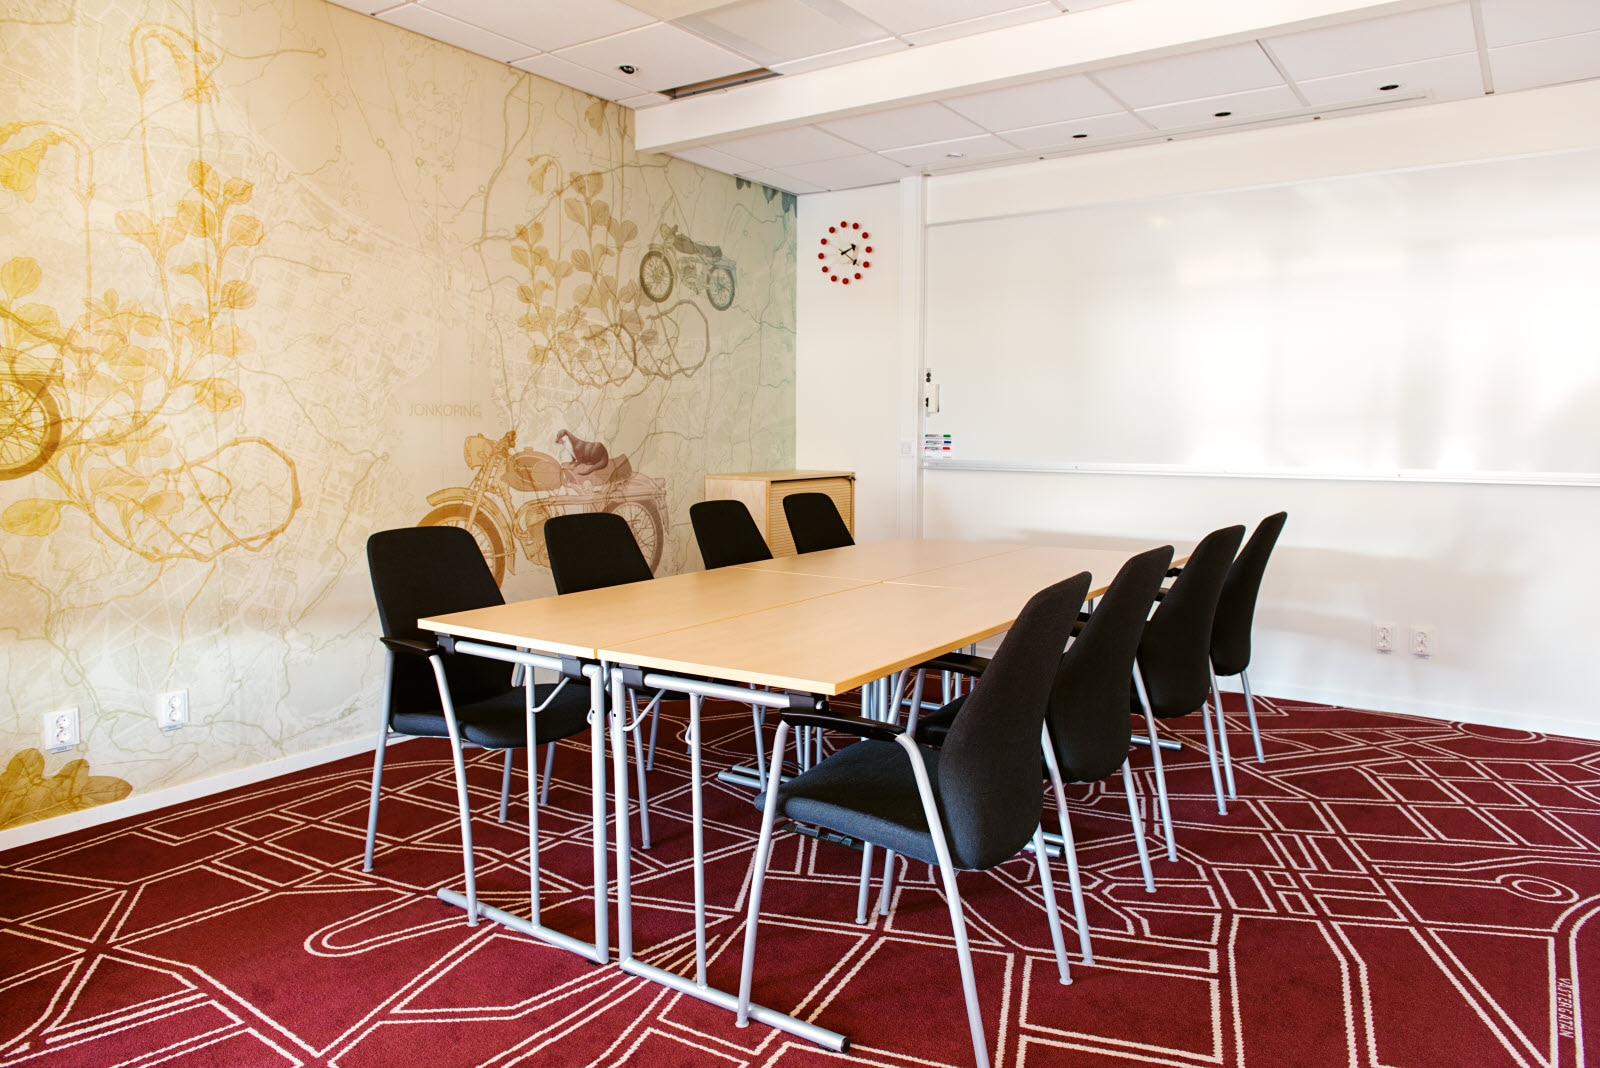 Scandic-Elmia-Interior-conference-meeting-room.jpg